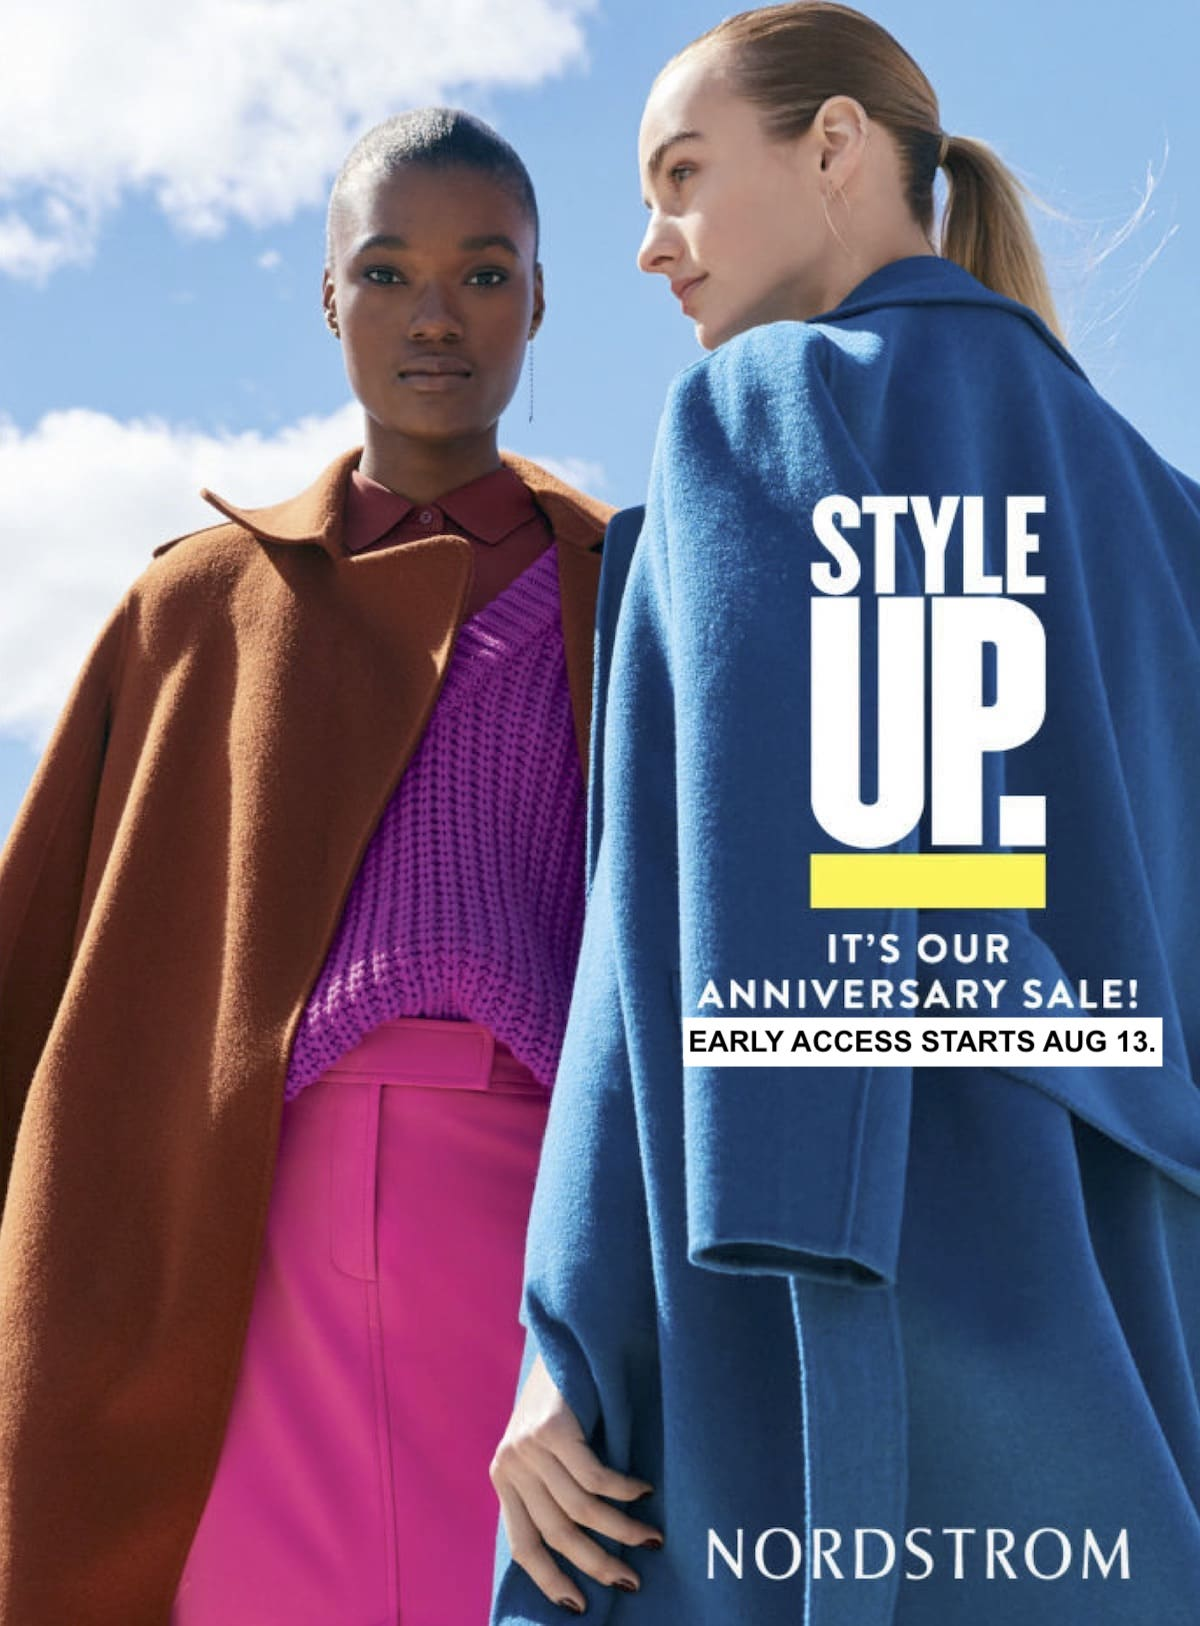 These are the absolute BEST pieces from the Nordstrom Anniversary Sale 2020 catalog. And our TOP 5 hottest picks from each category that will sell out fast. View and download the 2020 sale catalog + enter to win two $500 Nordstrom gift card to shop the #NSALE this year!